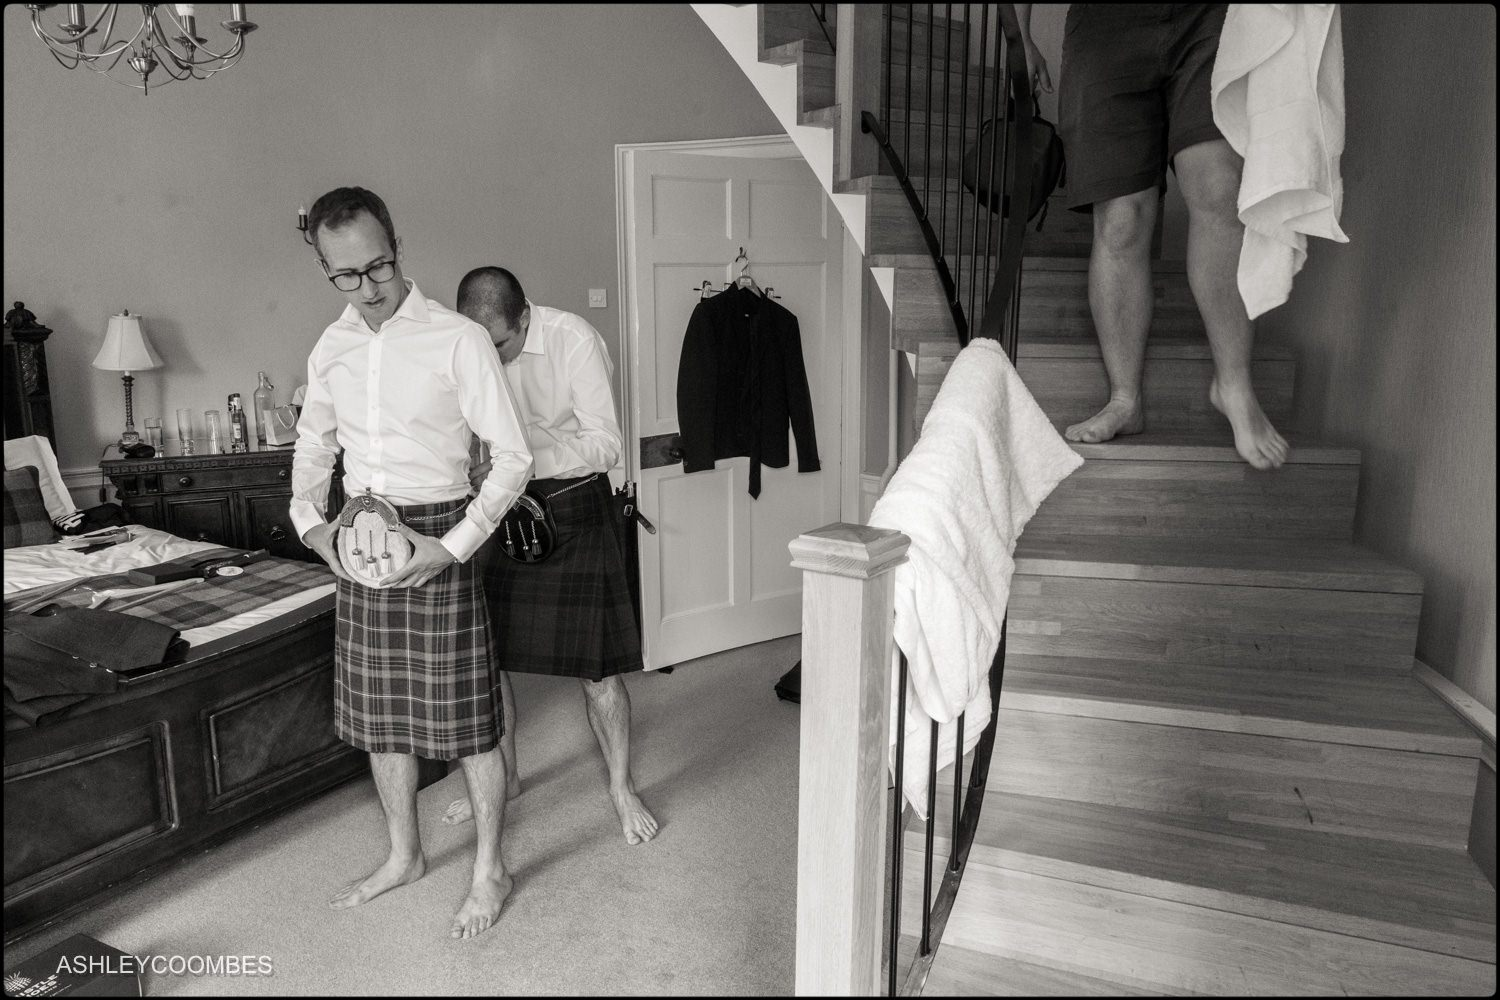 groom dresses in kilt